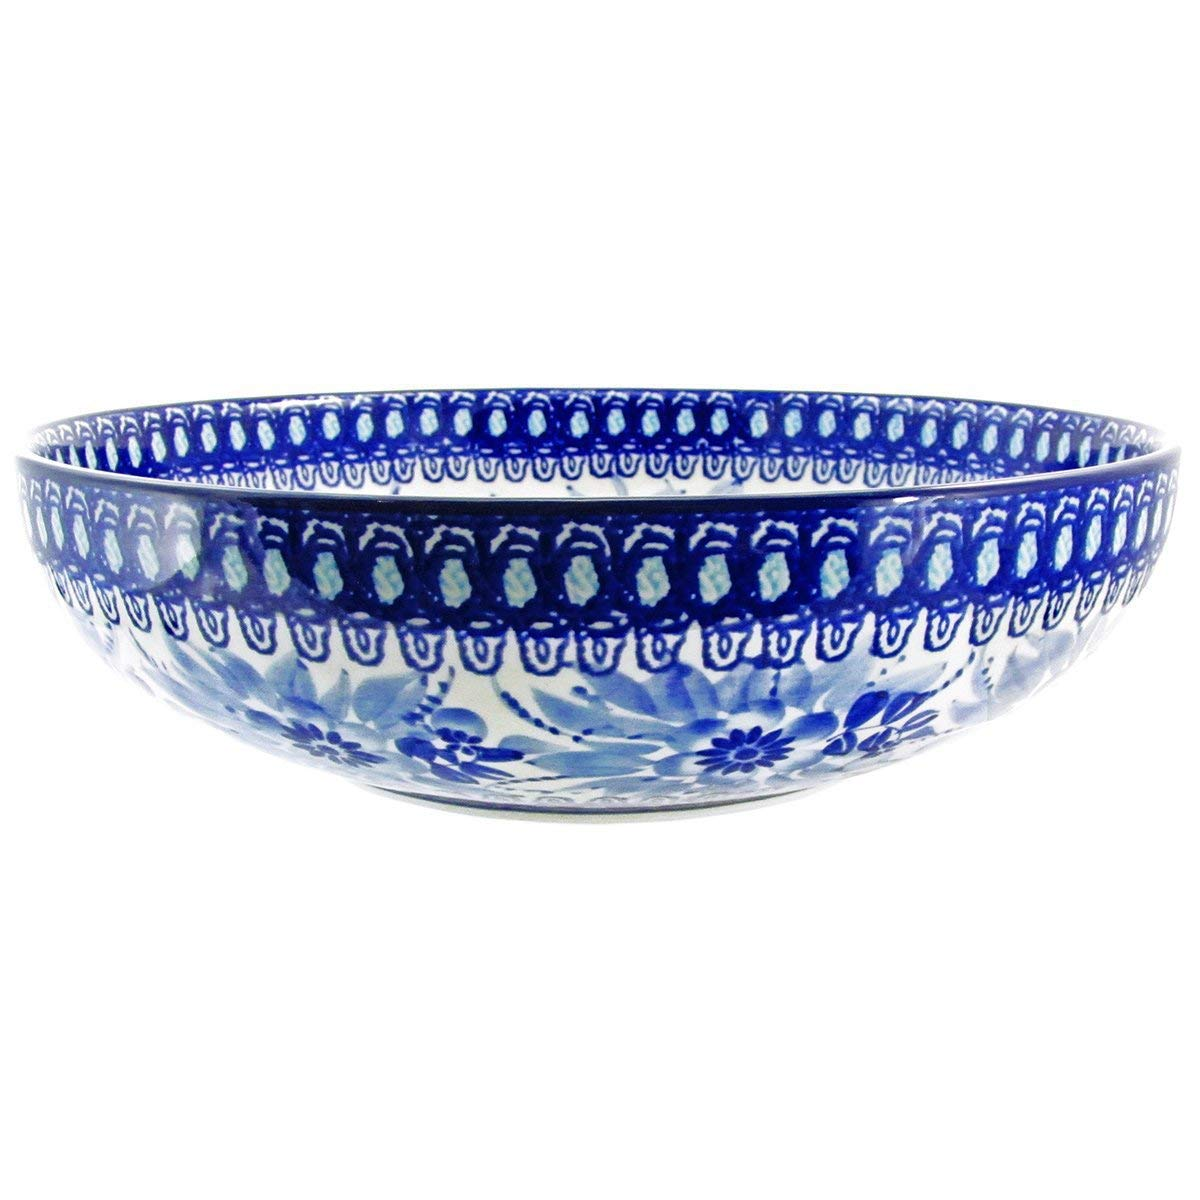 Polish Pottery Handmade Vintage Unikat 10.5'' 2 QT SERVING BOWL - U214 by Great2bHome Polish Pottery and Unique Gifts (Image #3)